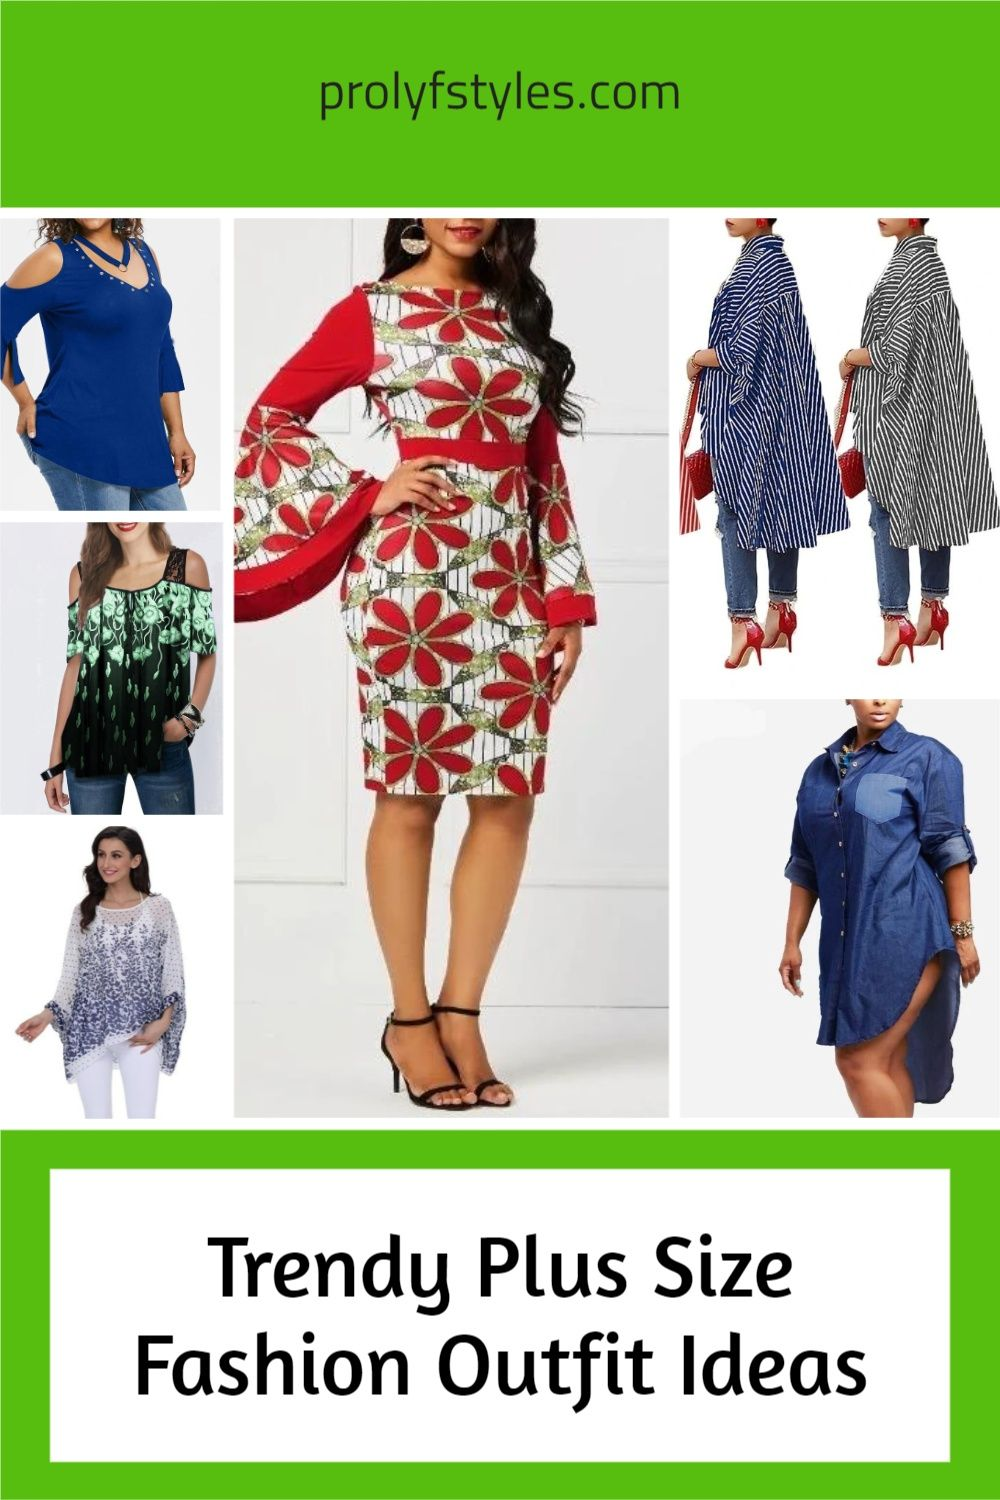 Curvy Fashion Outfits for Classy Fashion Looks in 8  Curvy